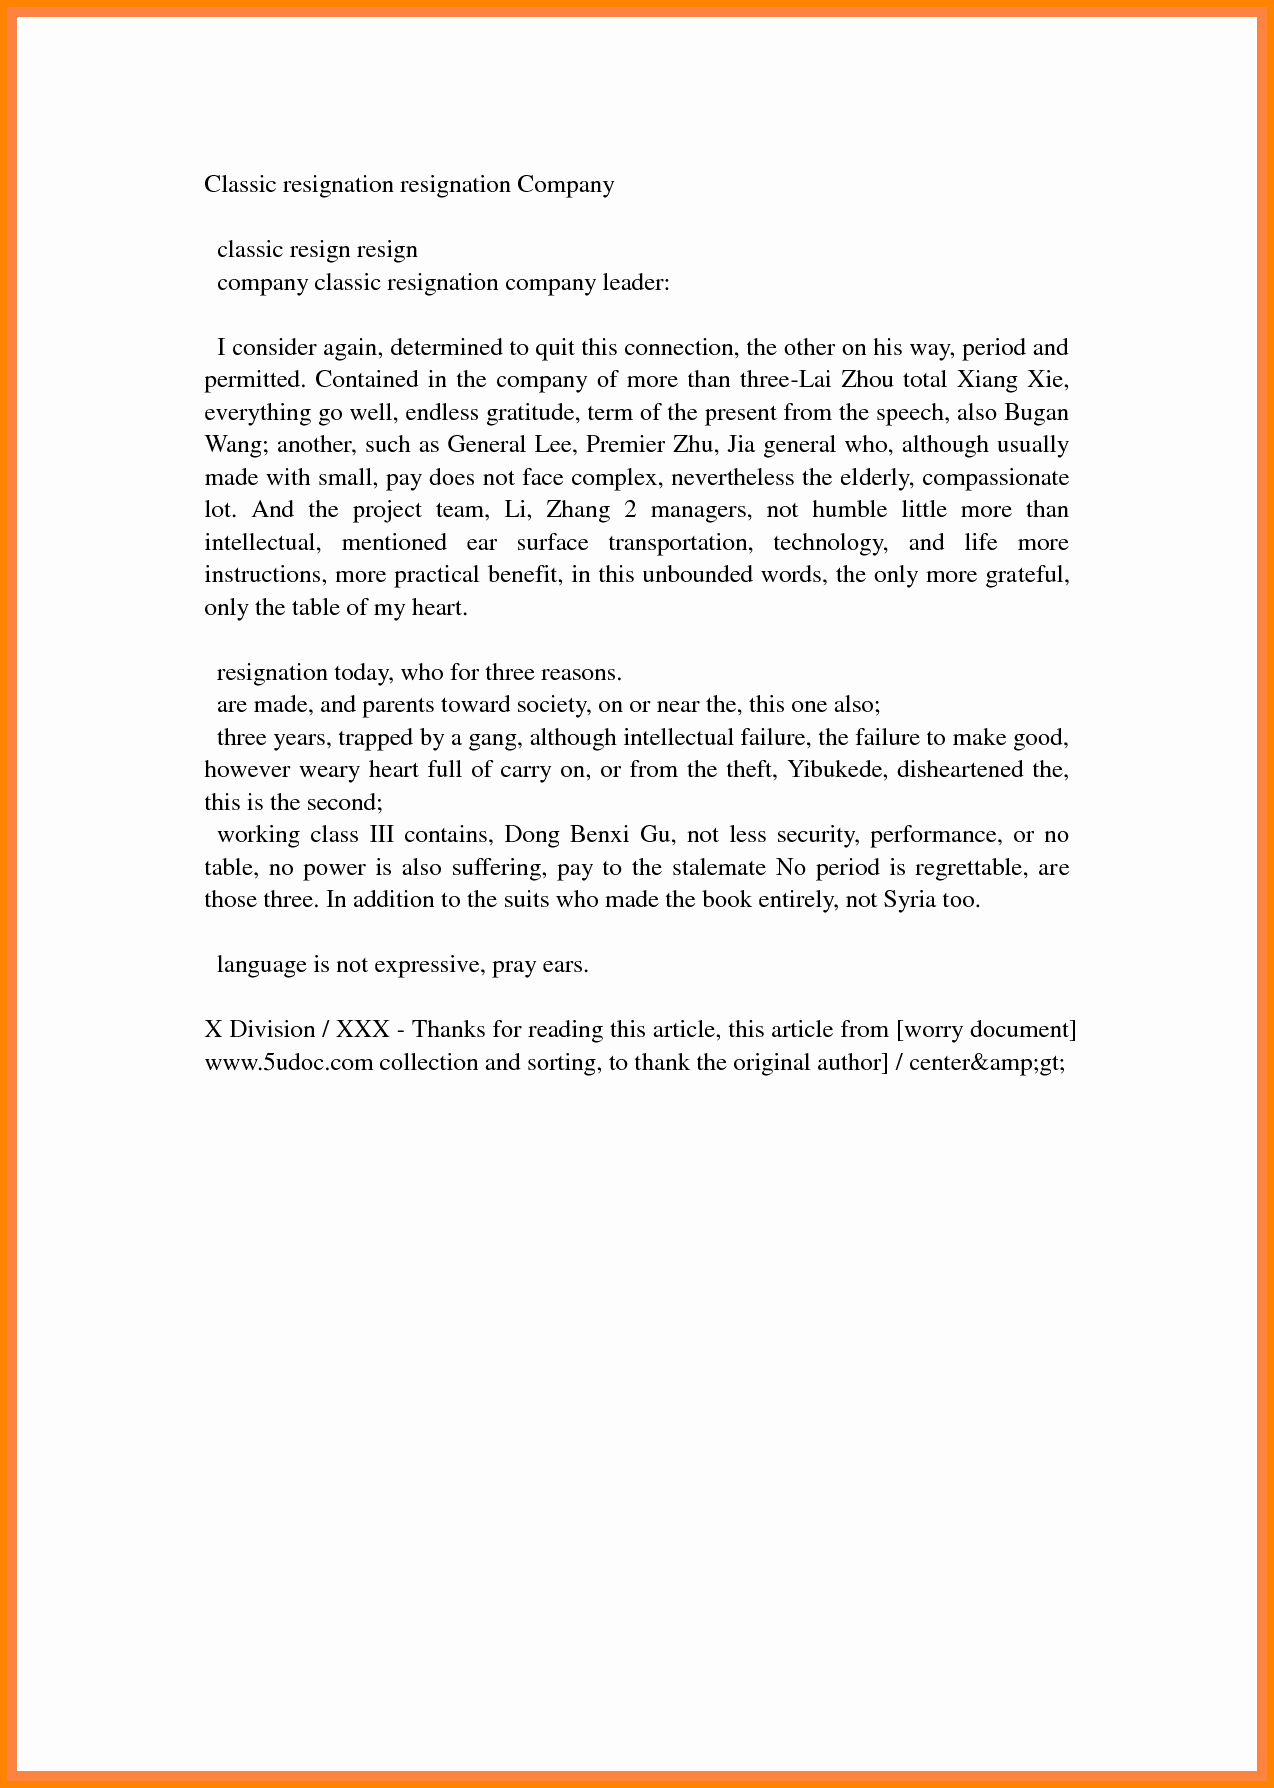 Resignation Letter Effective Immediately Inspirational 7 Effective Resignation Letter